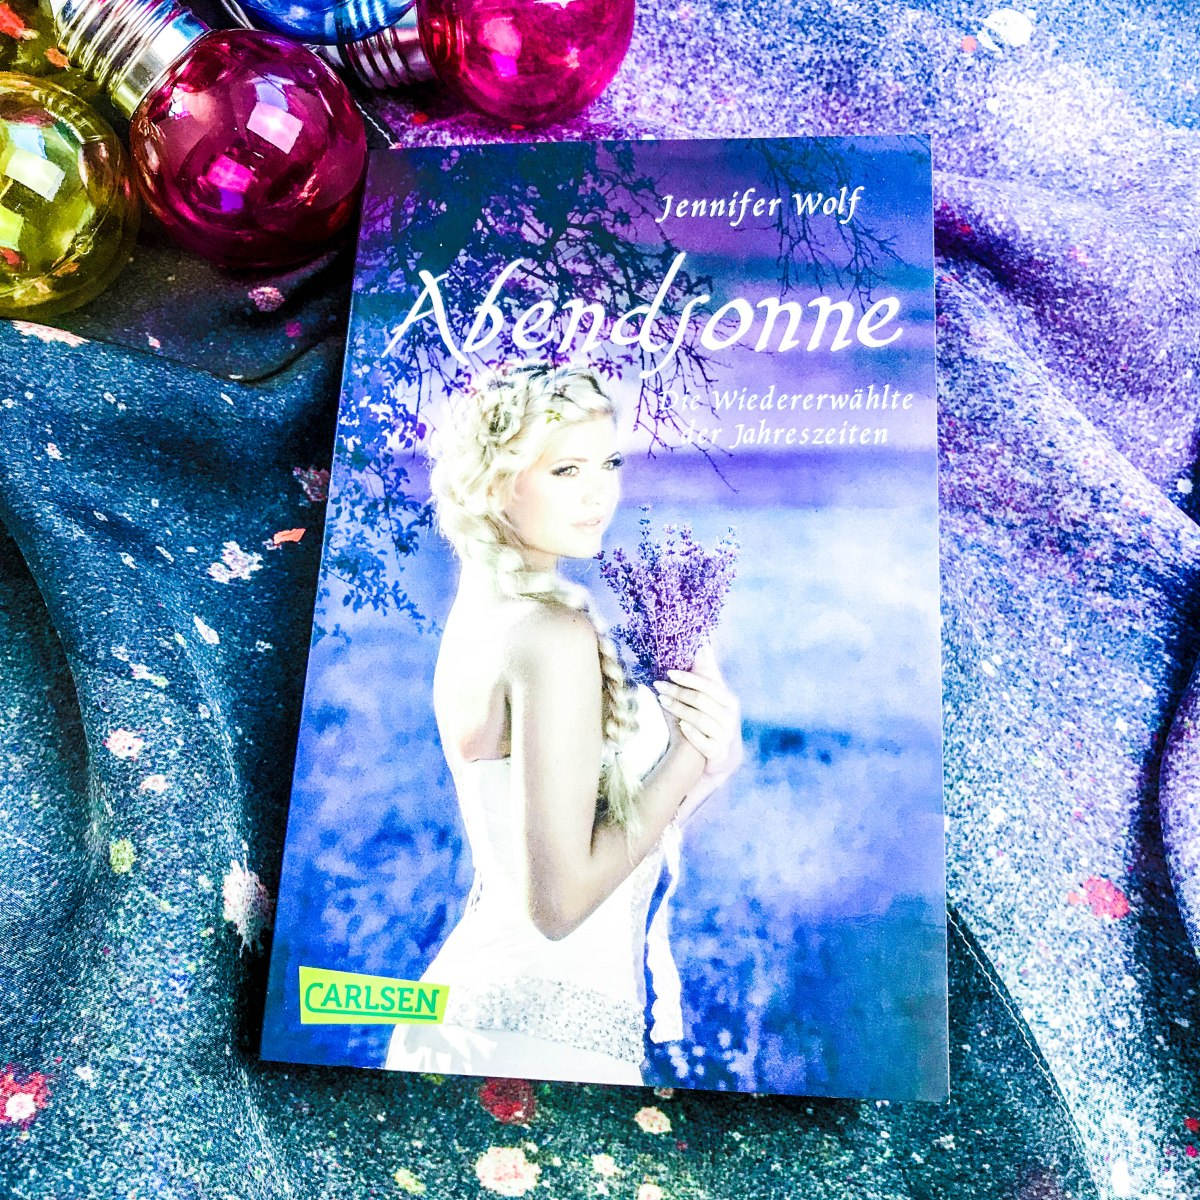 Rezension: Abendsonne